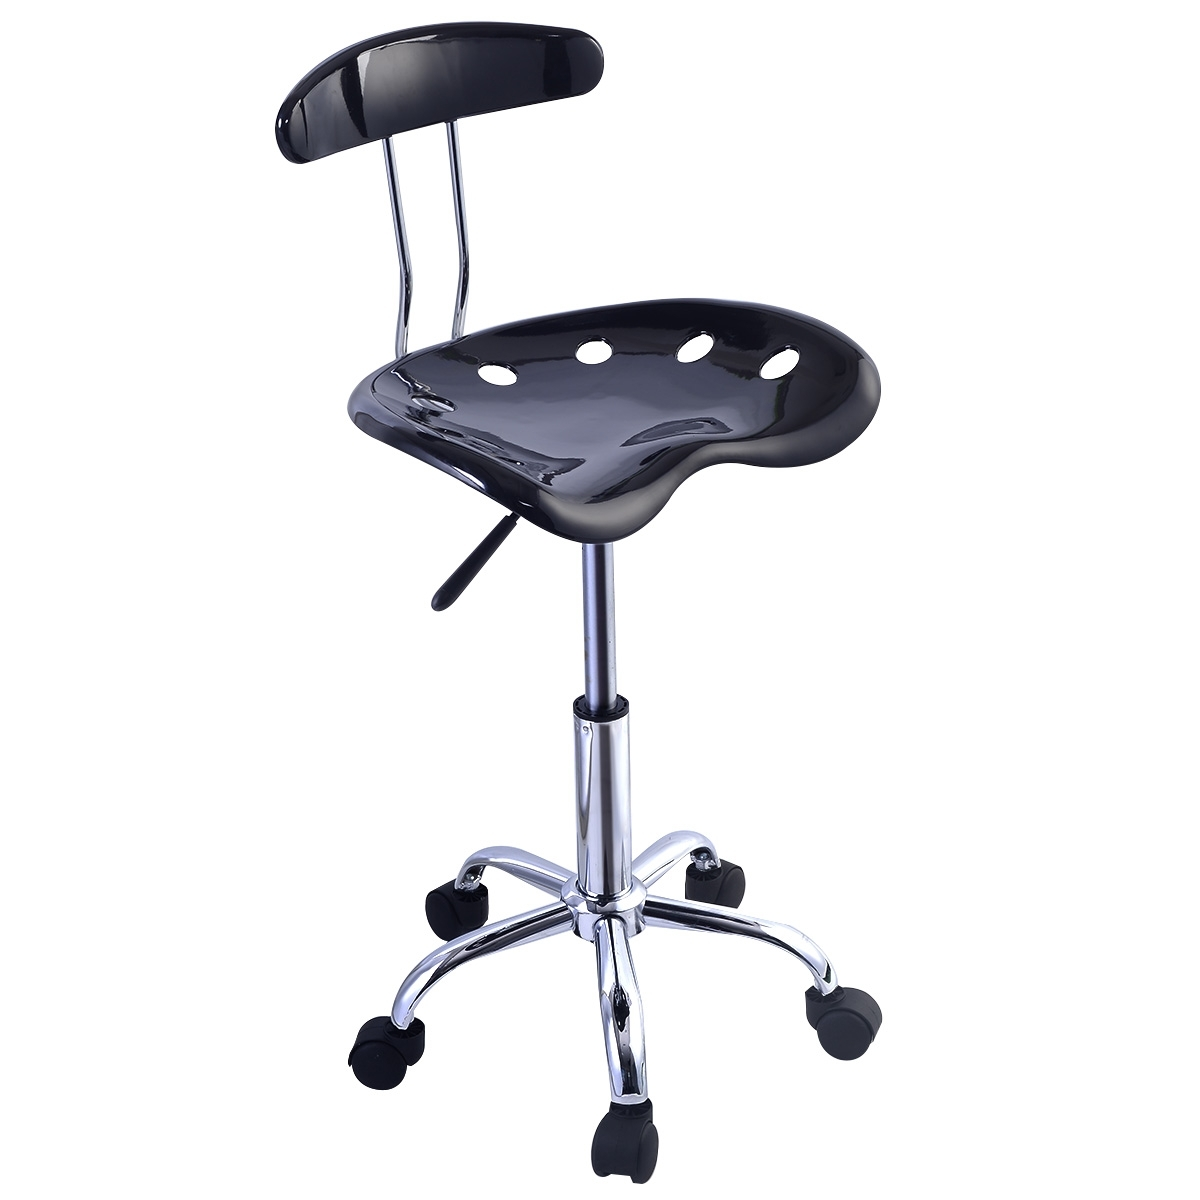 Vanity stool with wheels madison art center design - Bathroom vanity chair with casters ...